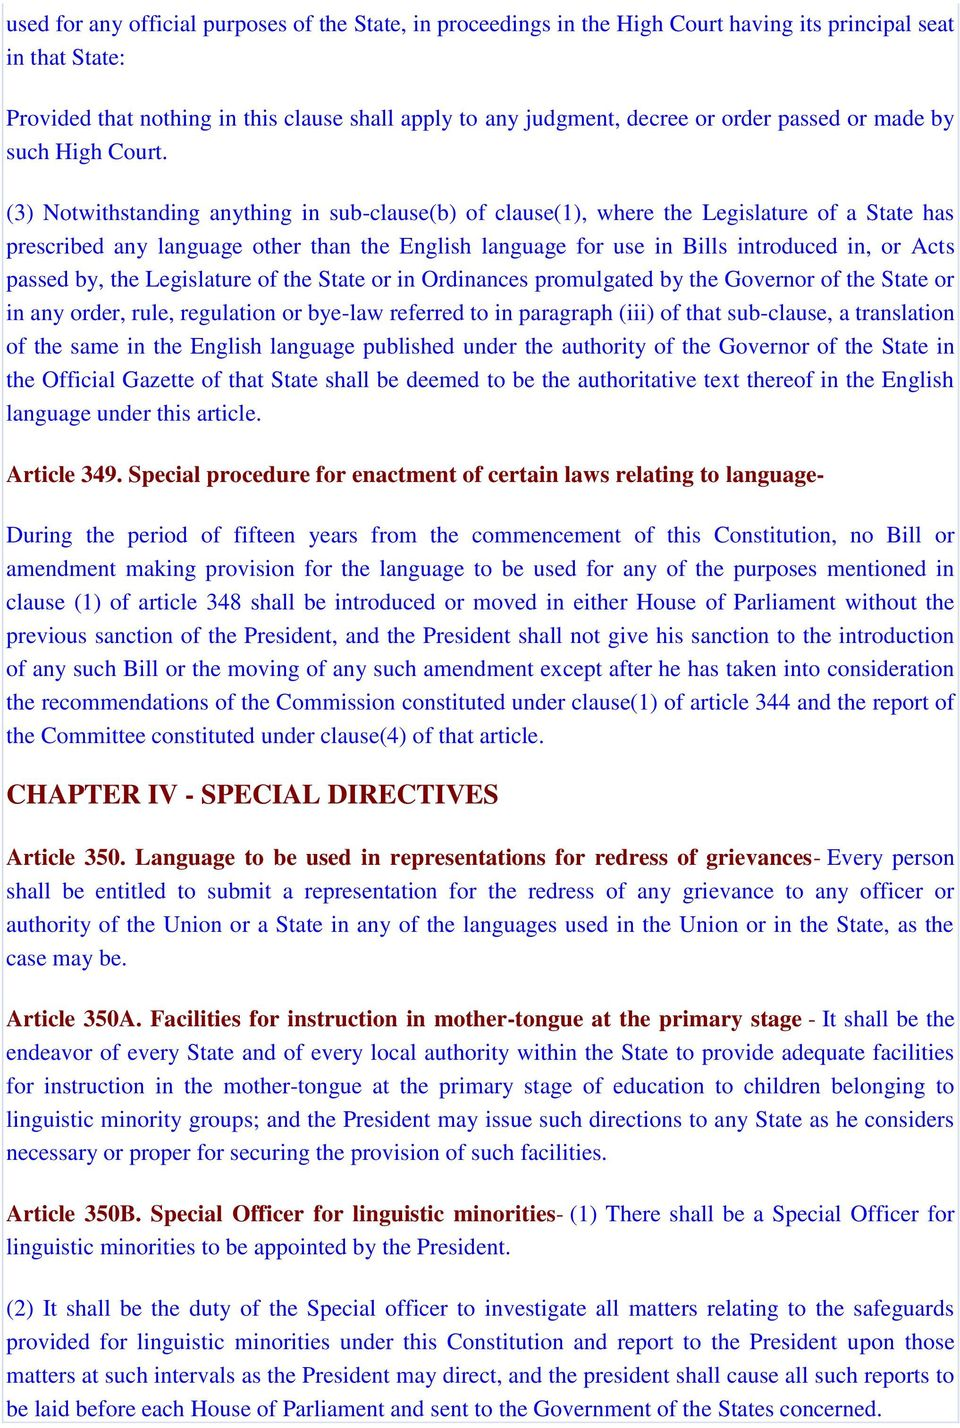 (3) Notwithstanding anything in sub-clause(b) of clause(1), where the Legislature of a State has prescribed any language other than the English language for use in Bills introduced in, or Acts passed